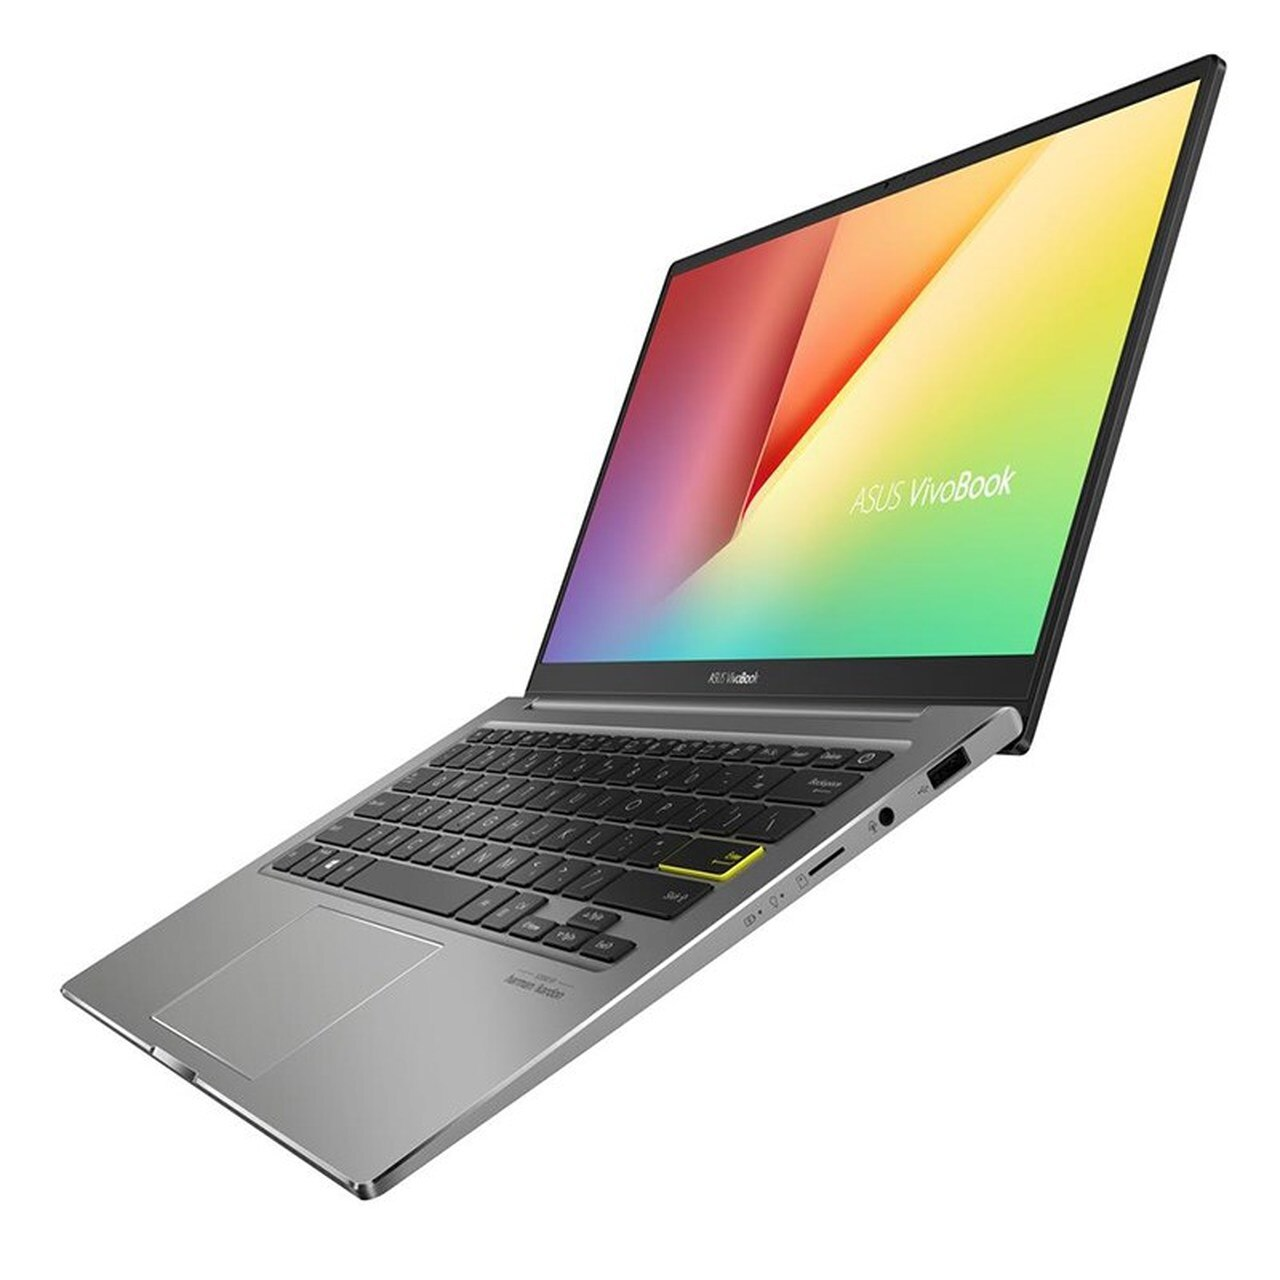 Asus VivoBook S13 13.3' FHD  i5-1035G1 8GB 512GB SSD WIN10 PRO MX330 2GB Backlit 3CELL 1.2kg 1YR WTY W10P Notebook (Indie Black) (S333JP-EG009R)